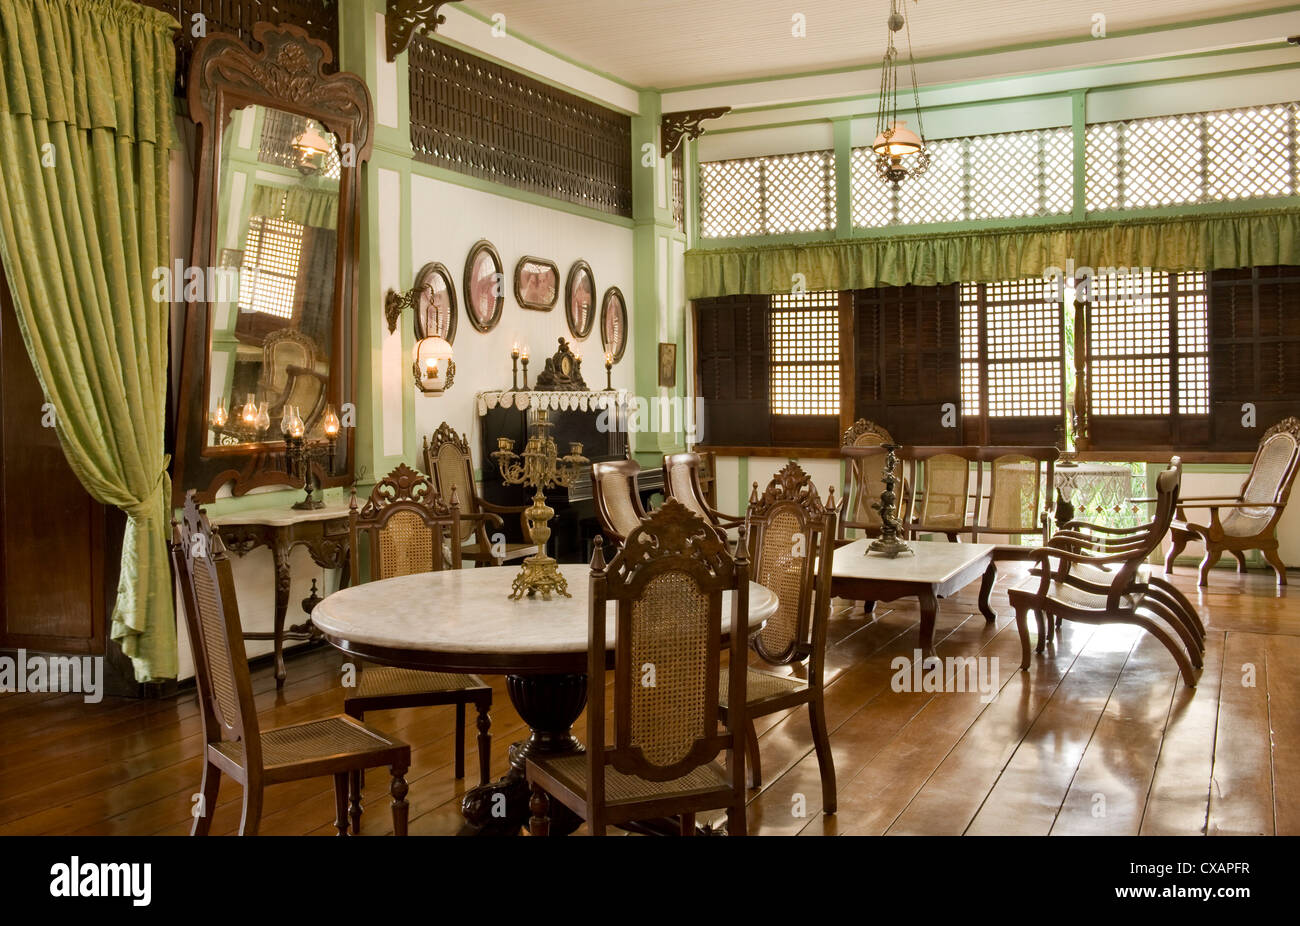 Main sala of the Pastor Heritage House dating from 1883, a classic Filipino style Bahay na bato in Batangas, Philippines - Stock Image